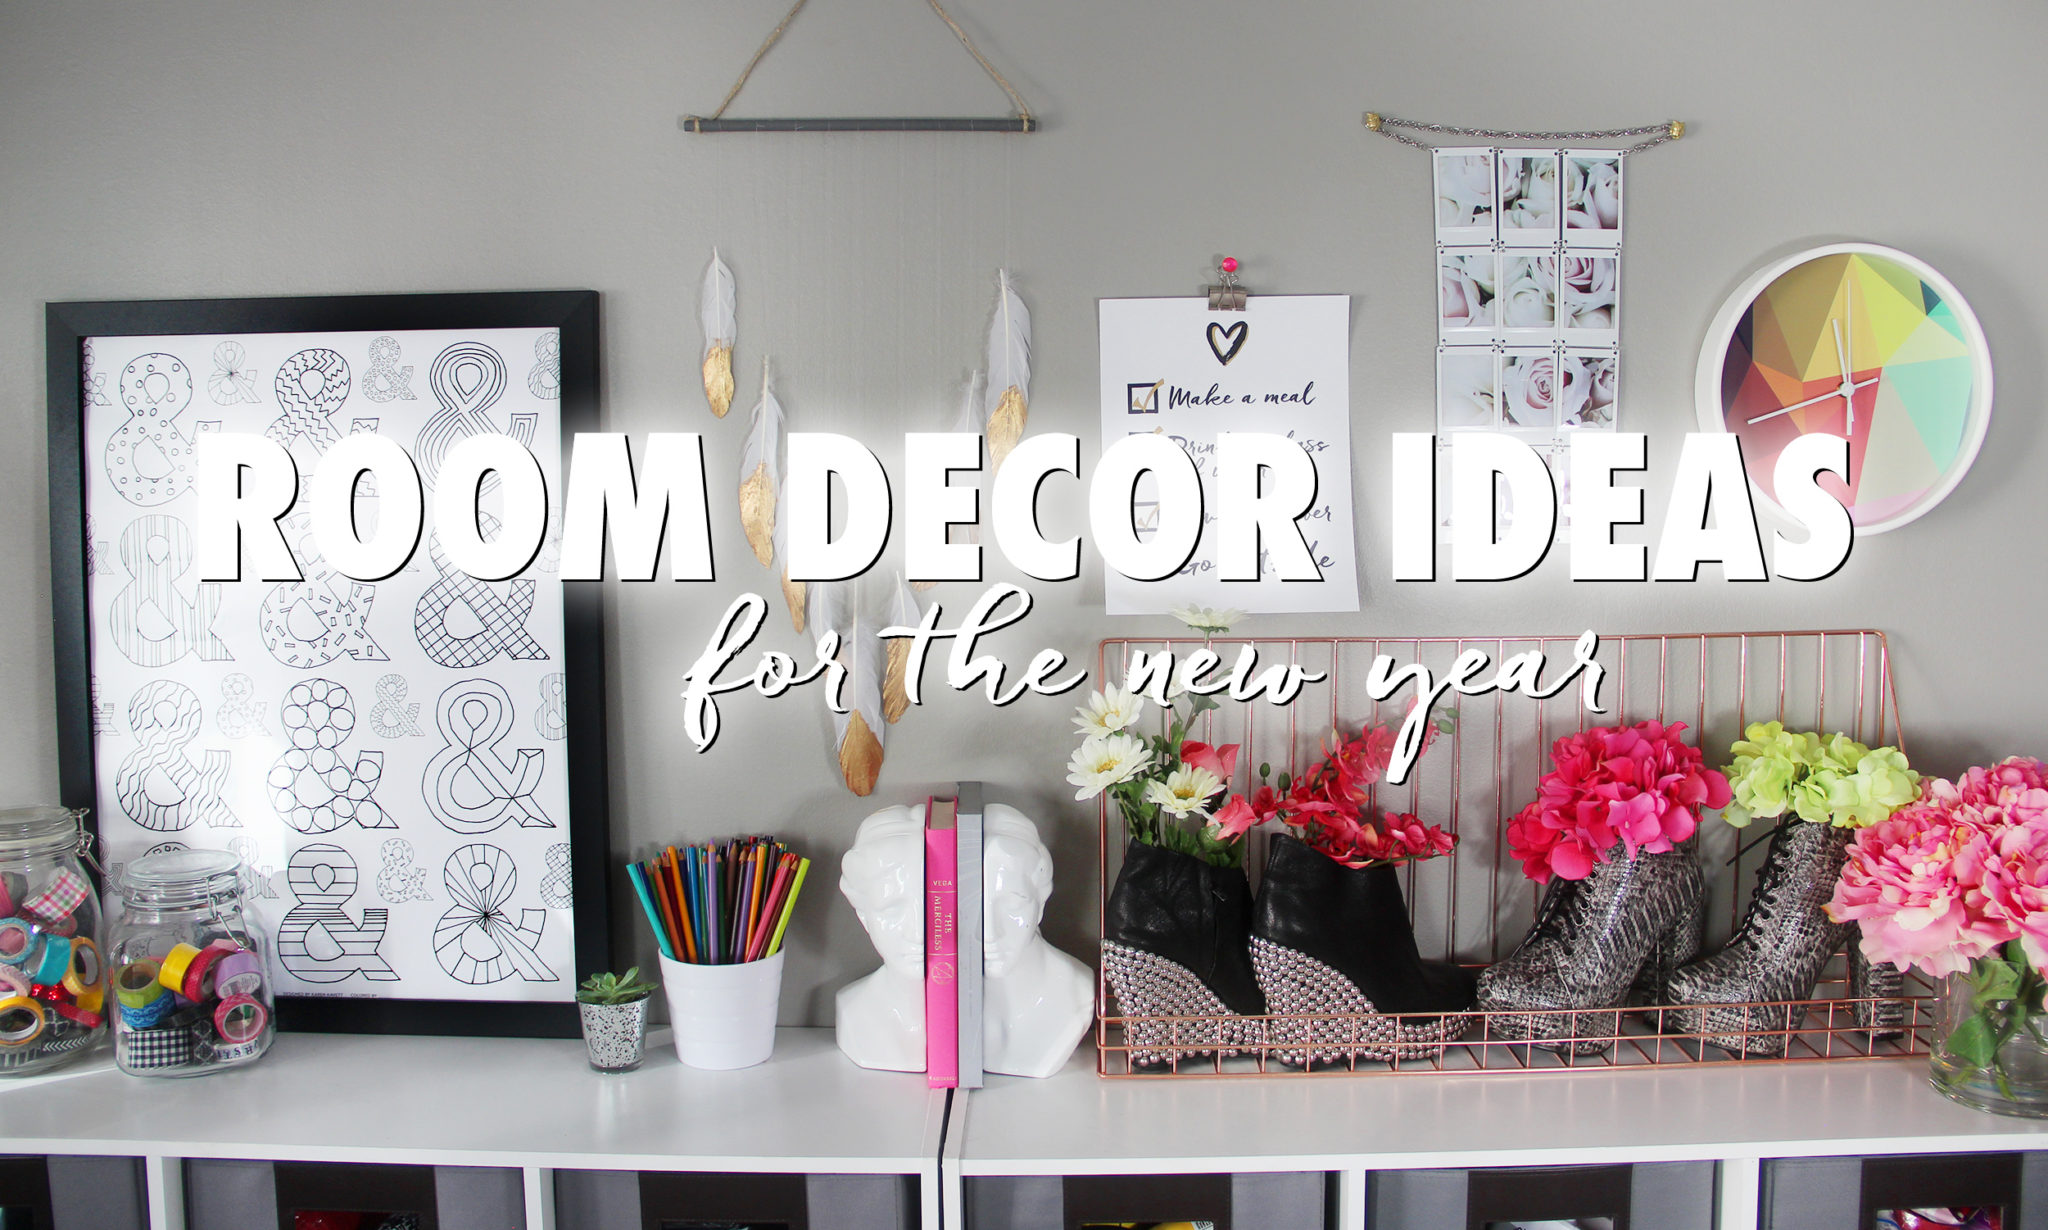 3 Room Decor Ideas for 2016 + Free Printable Motivational ... on Room Decor Posters id=59439